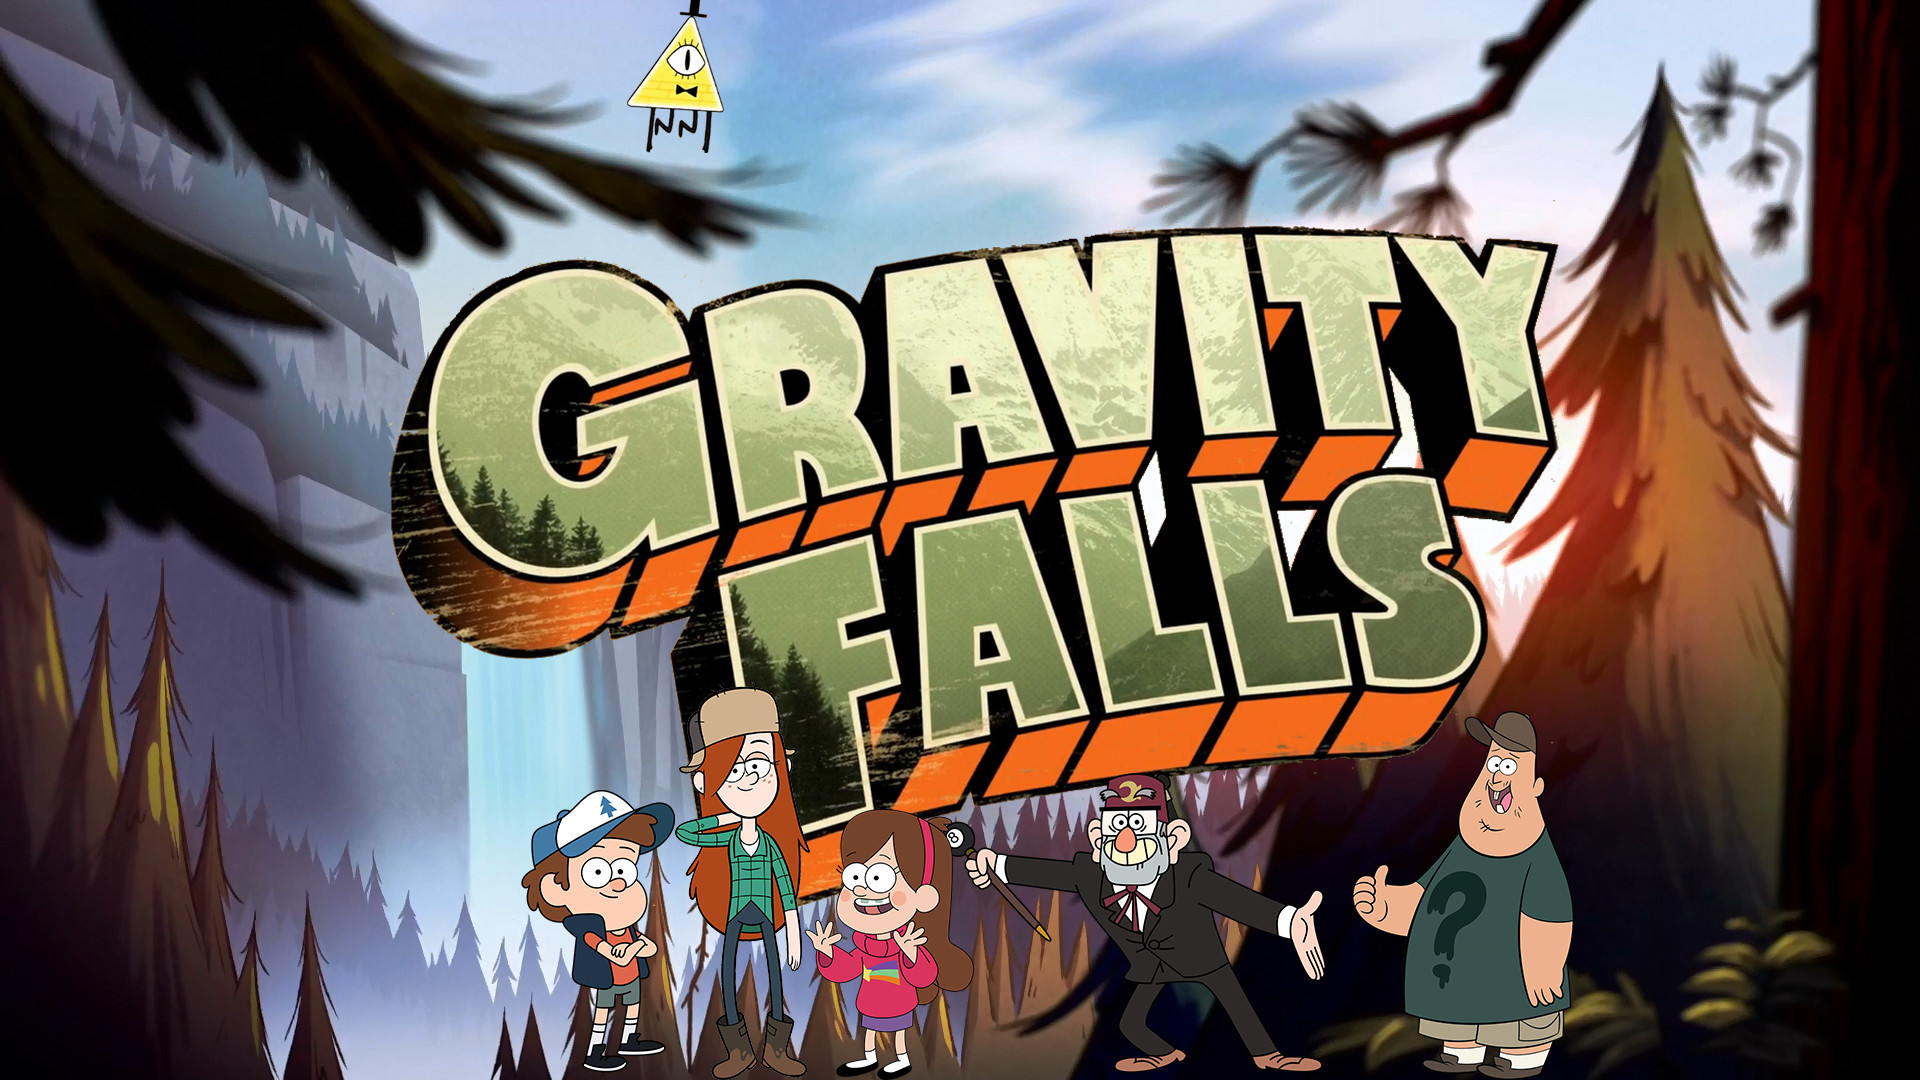 Gravity Falls Bill Cipher Wallpaper Phone Gravity Falls Wallpaper Phone 71 Images